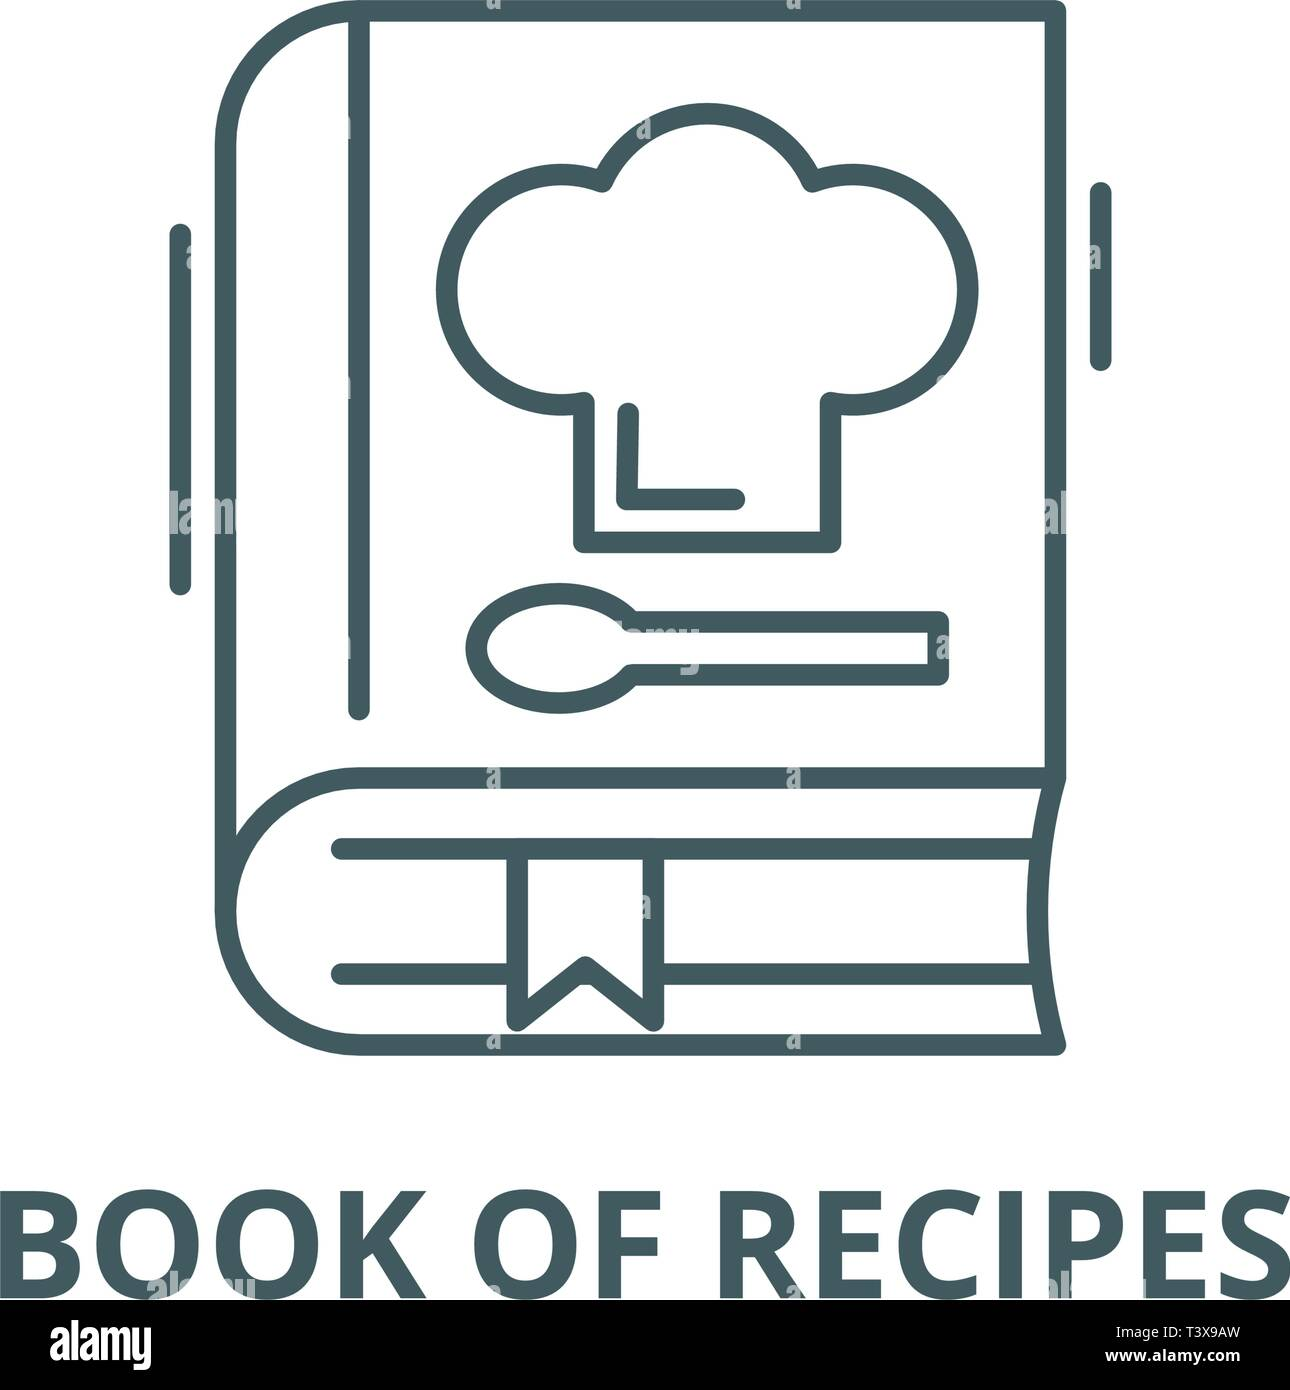 Book of recipes line icon, vector. Book of recipes outline